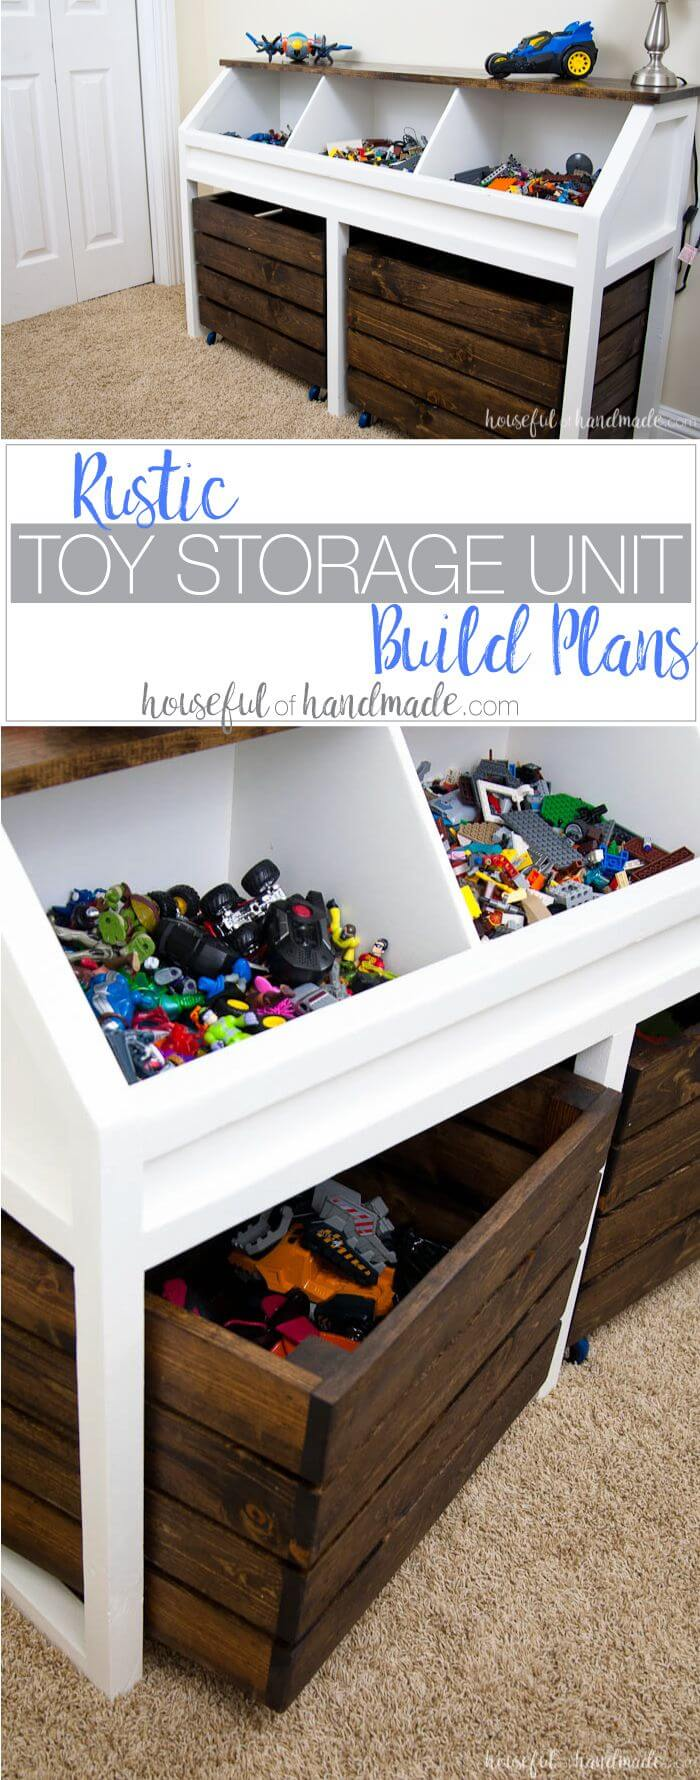 DIY Rustic Toy Storage Unit